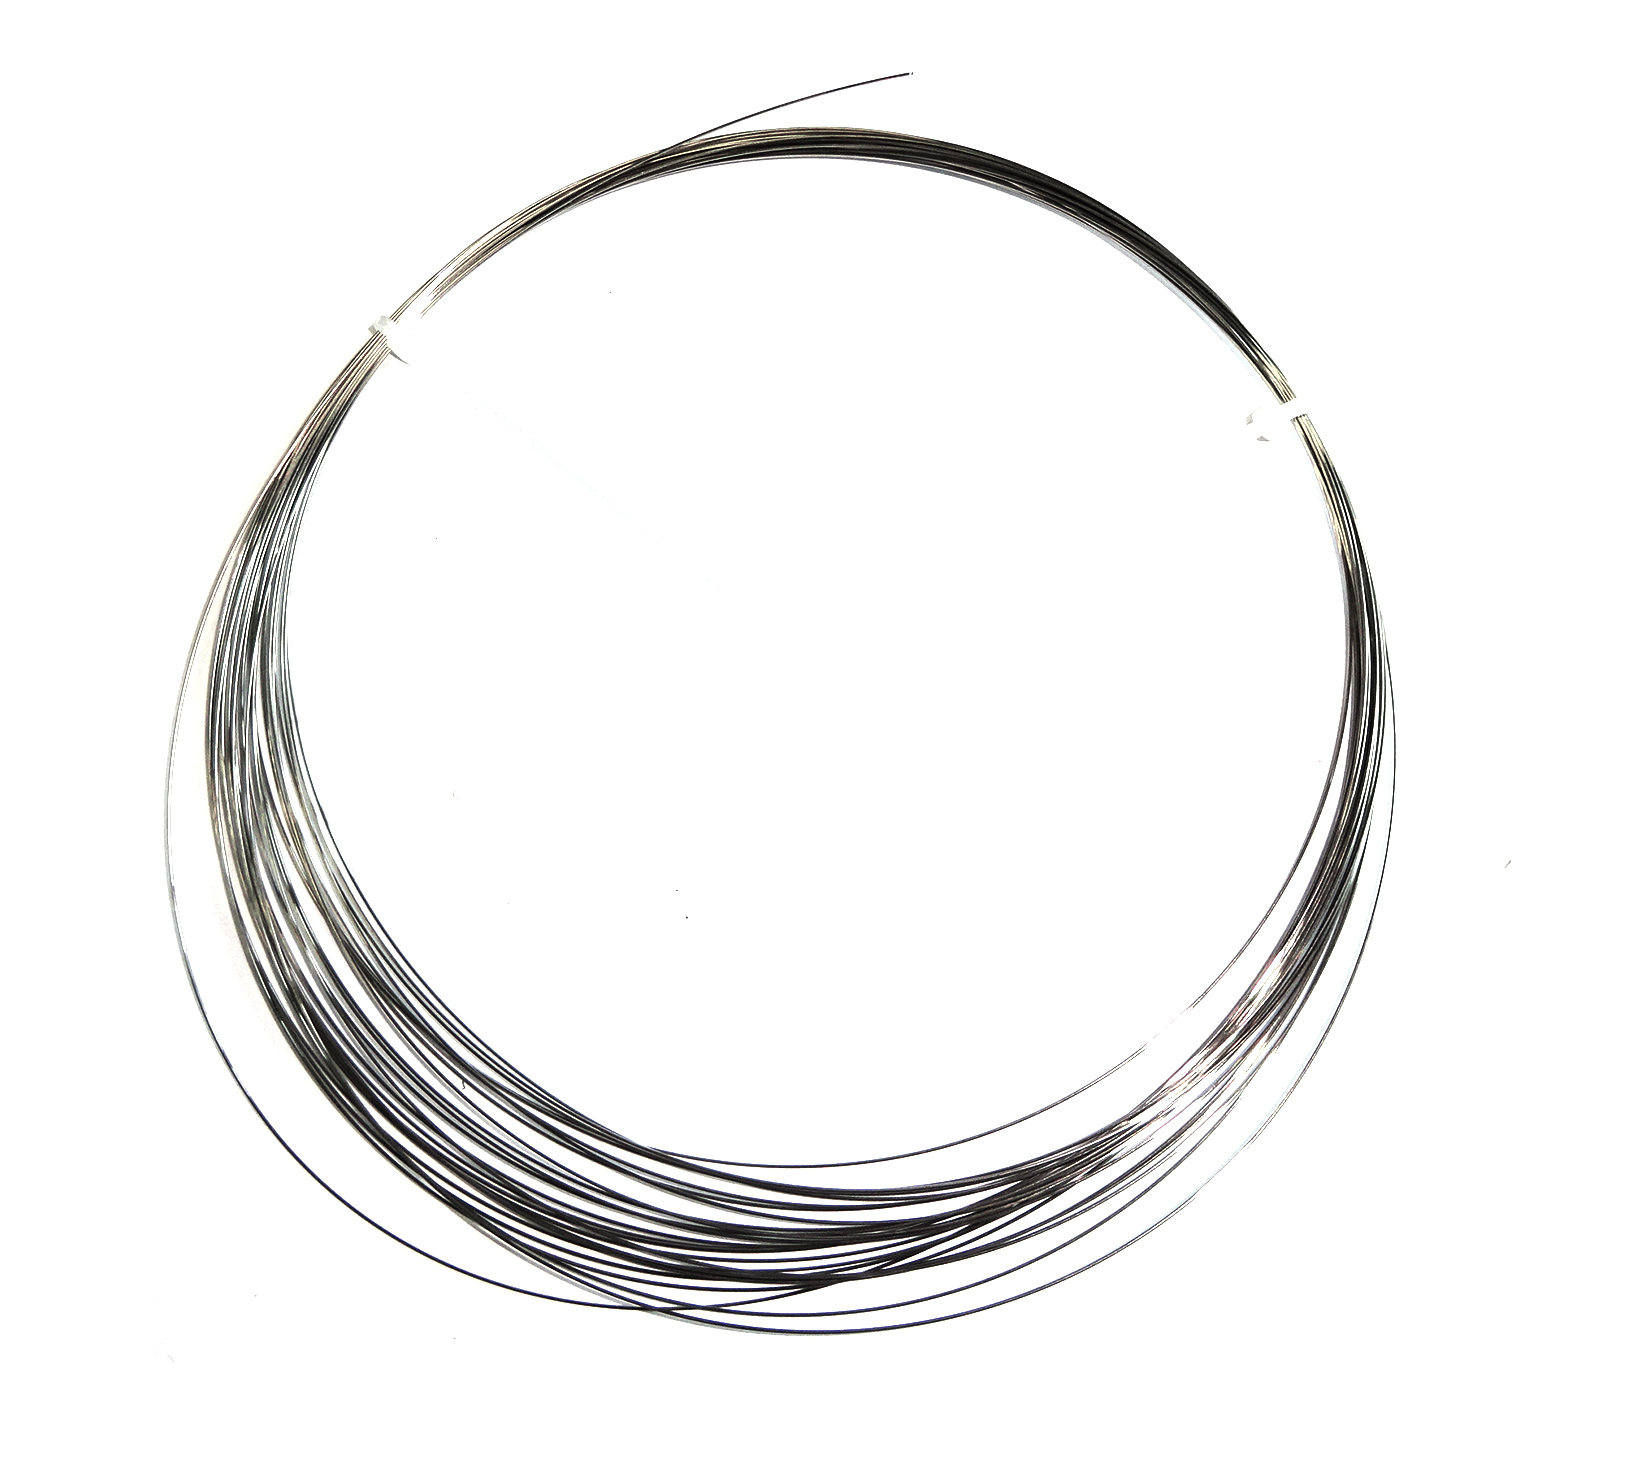 Orthopedic Wire - Stainless Steel - 26 Gauge - 10m